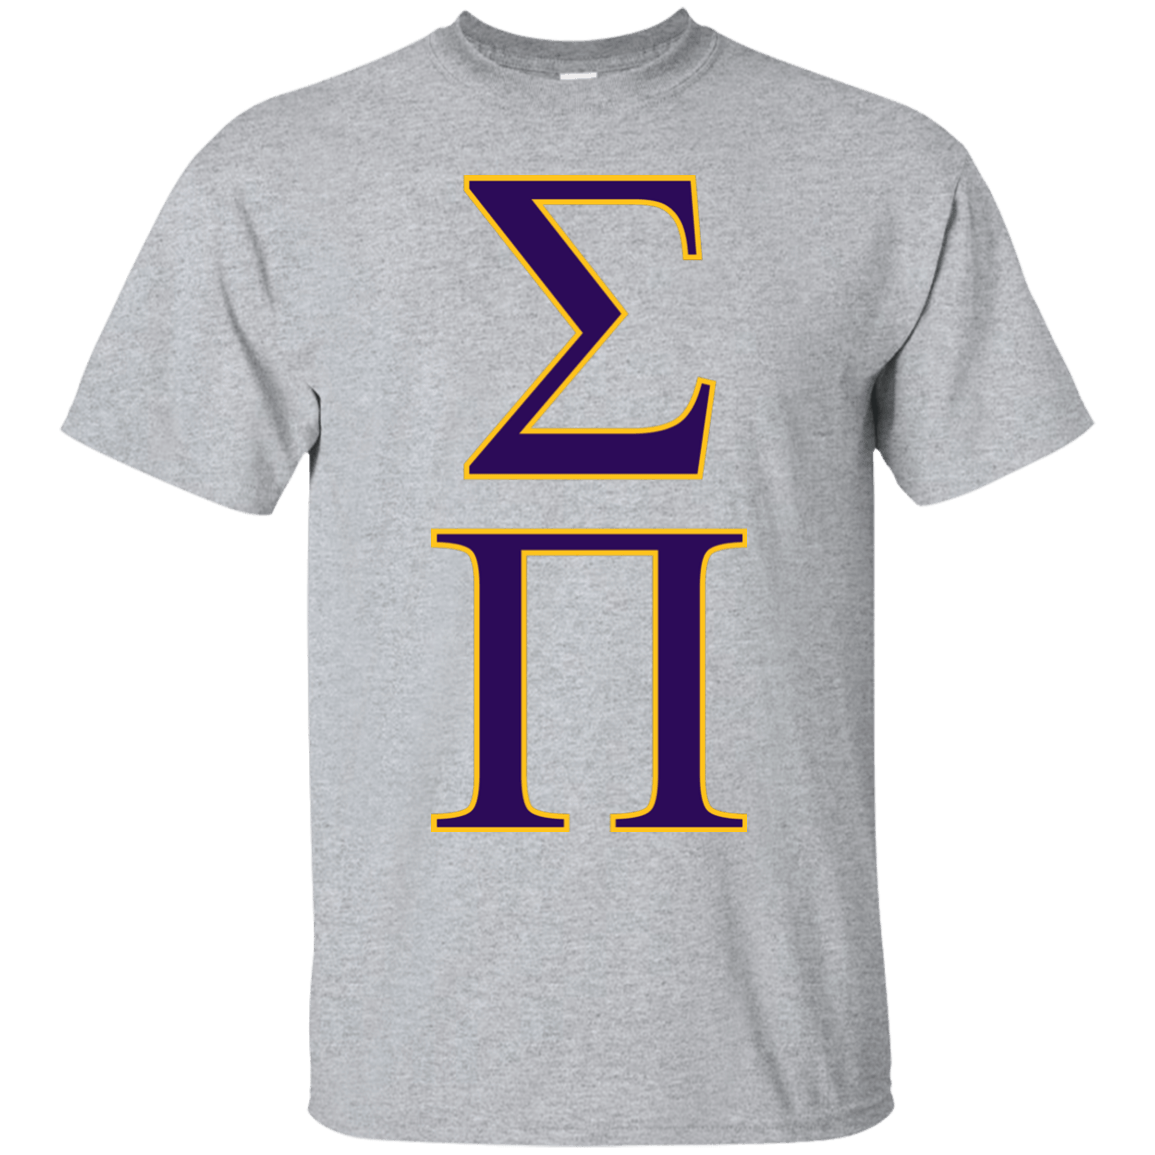 Sigma pi officially licensed t shirt assorted colors almighty search buycottarizona